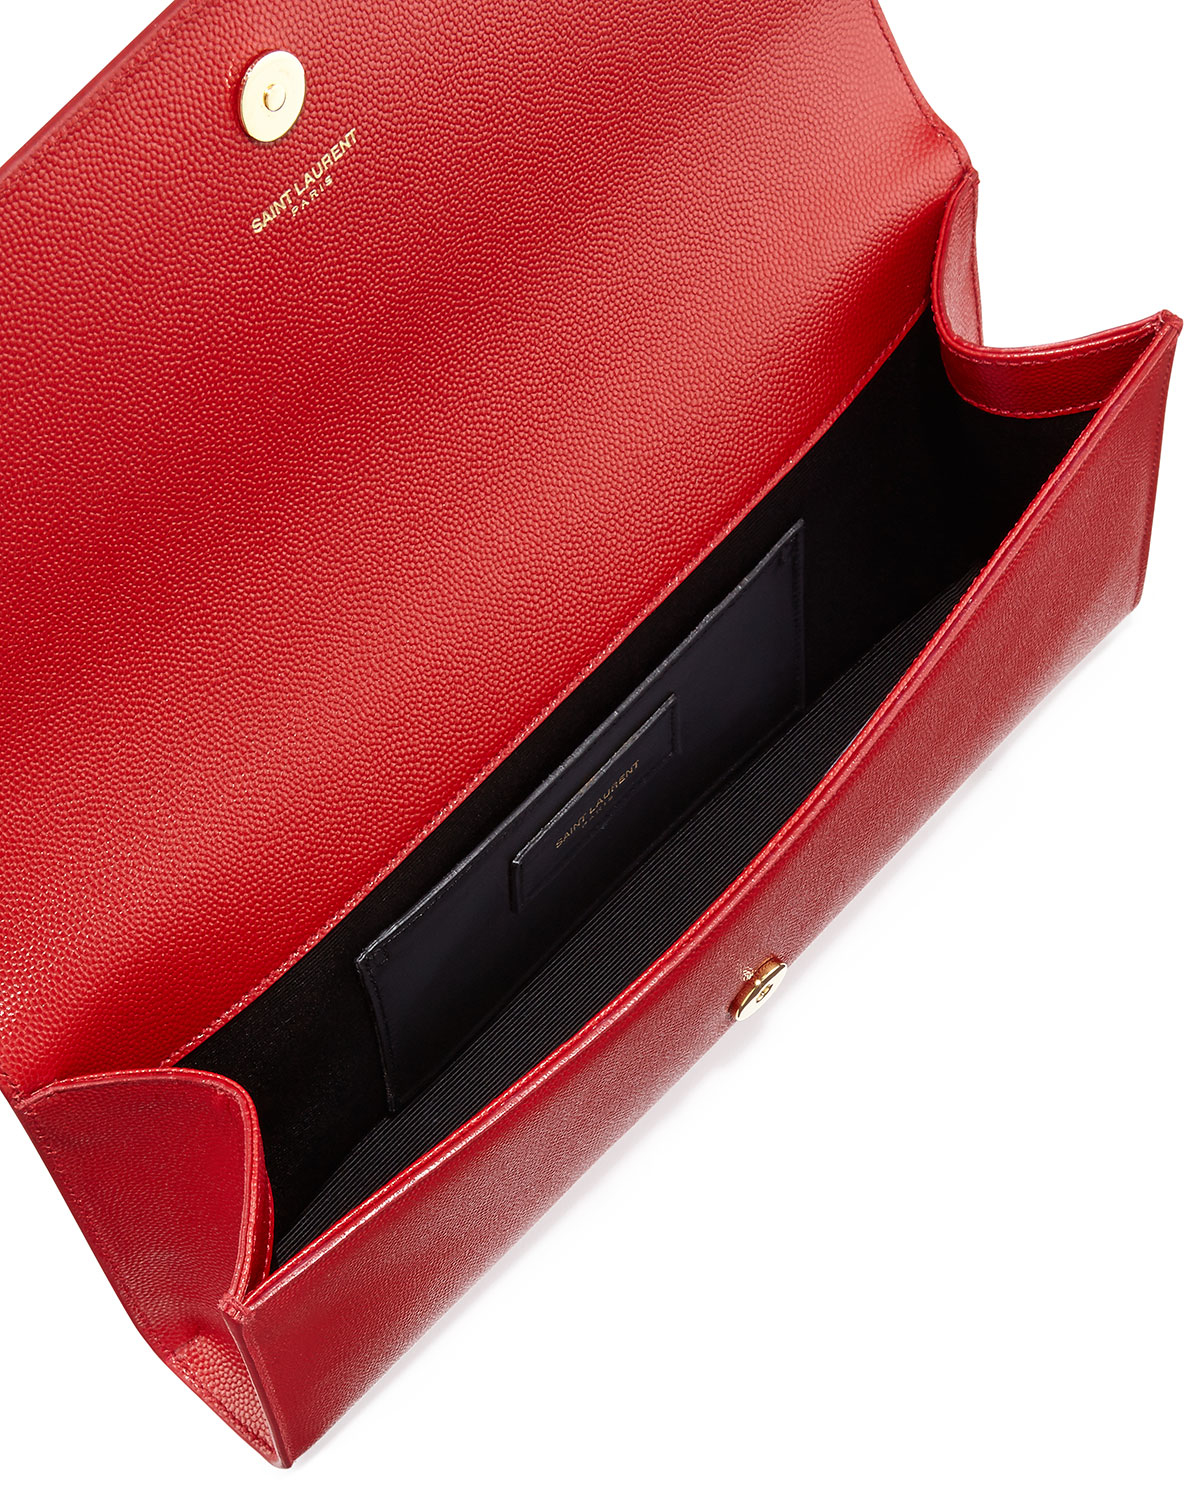 Saint Laurent Cassandre Ysl Flap Leather Clutch Bag In Red